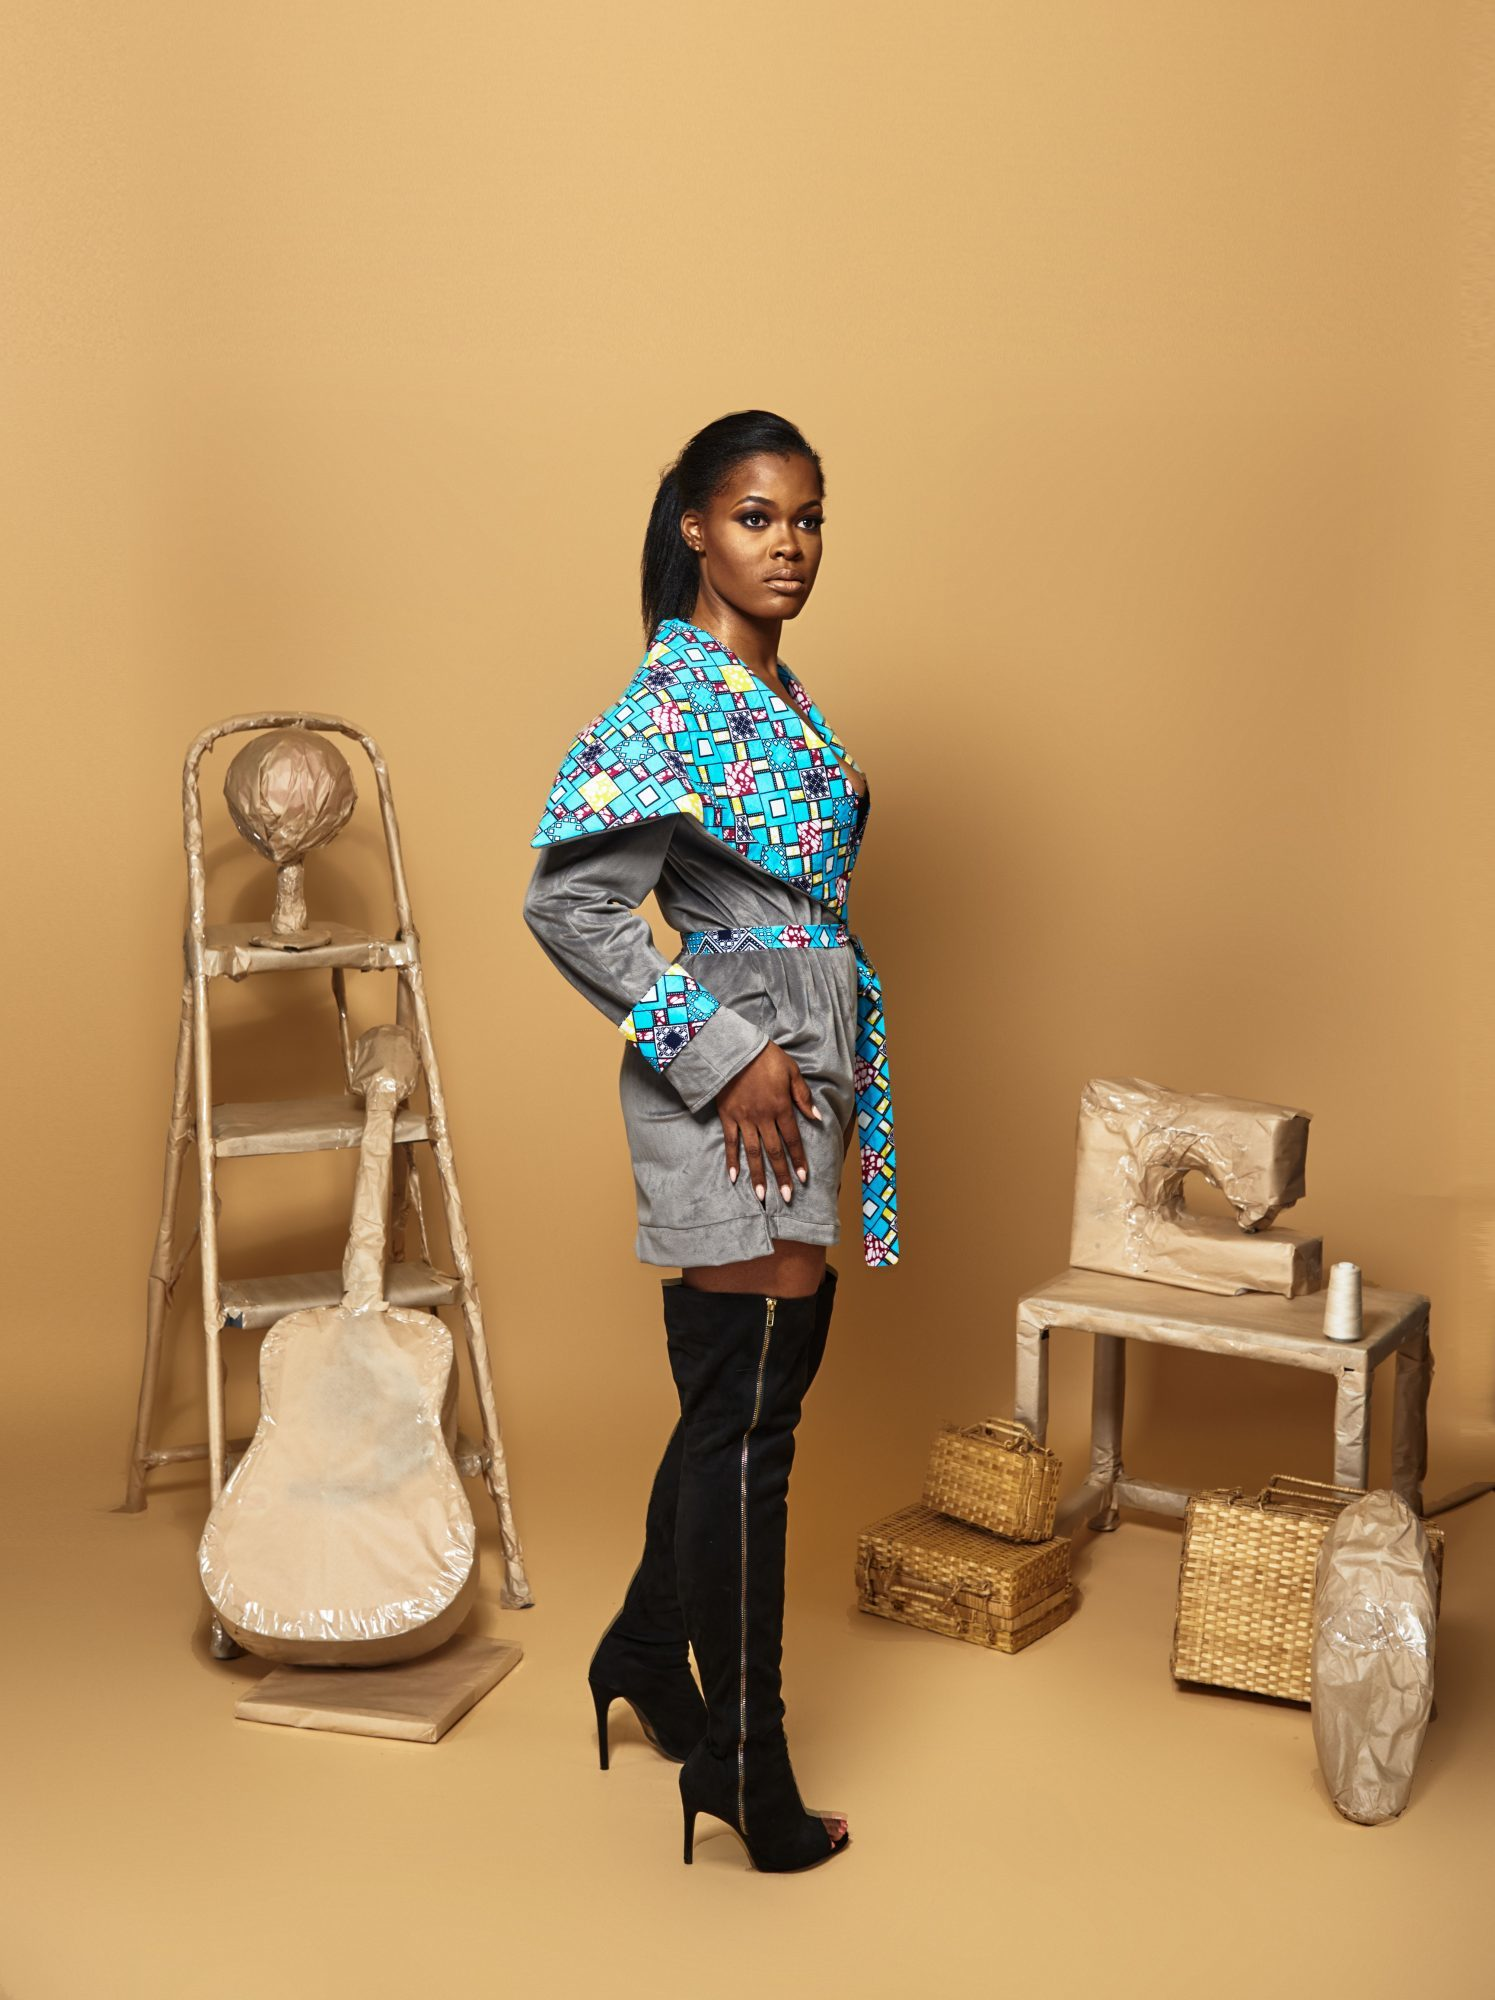 Afor Tumban debuts her personal style in Phoenix #Ankara #Cameroon #Couture #AfricanPrint